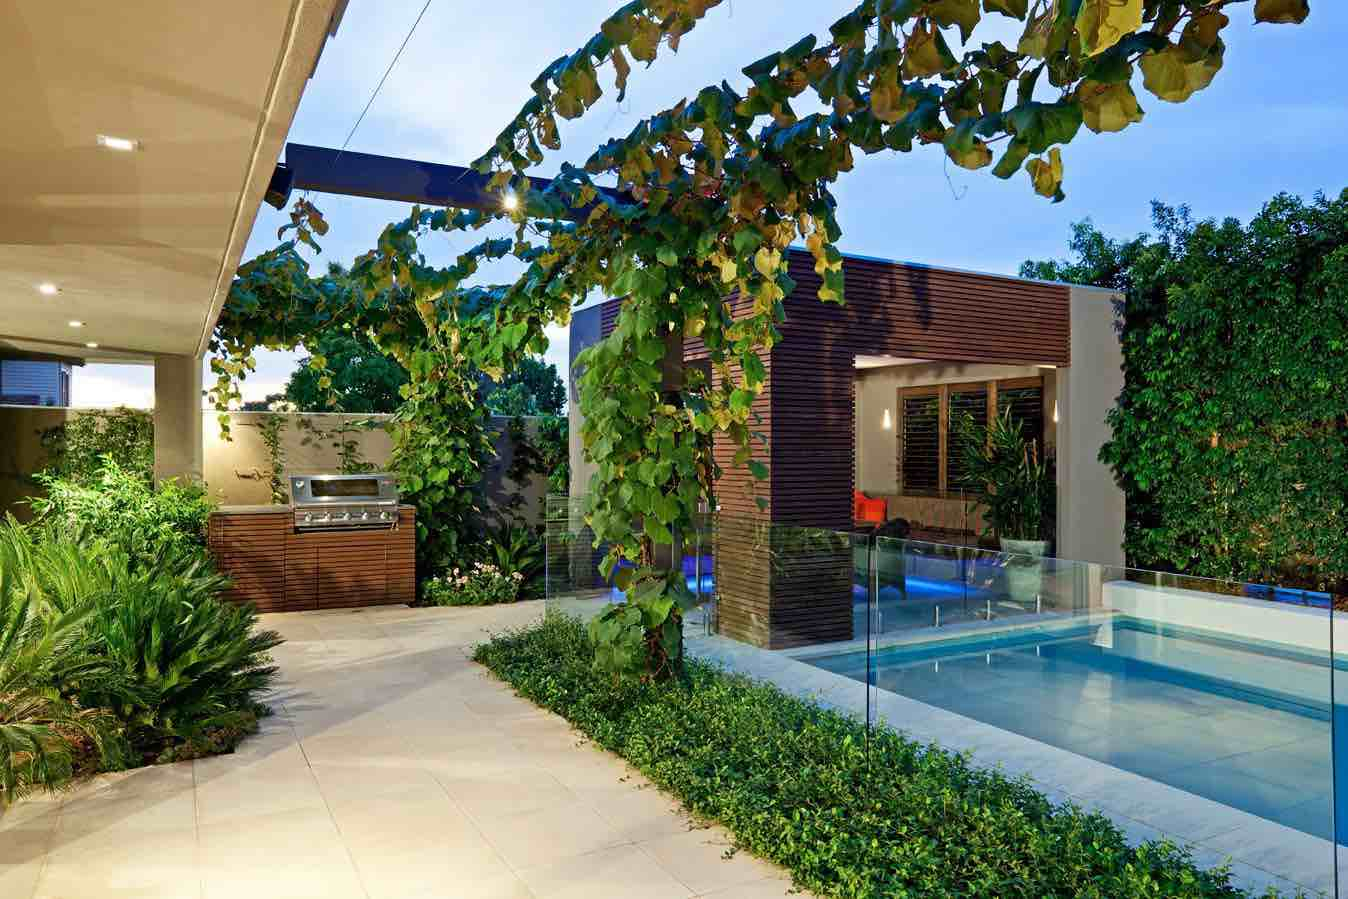 backyard design ideas for small yards  worthminer, Backyard Ideas